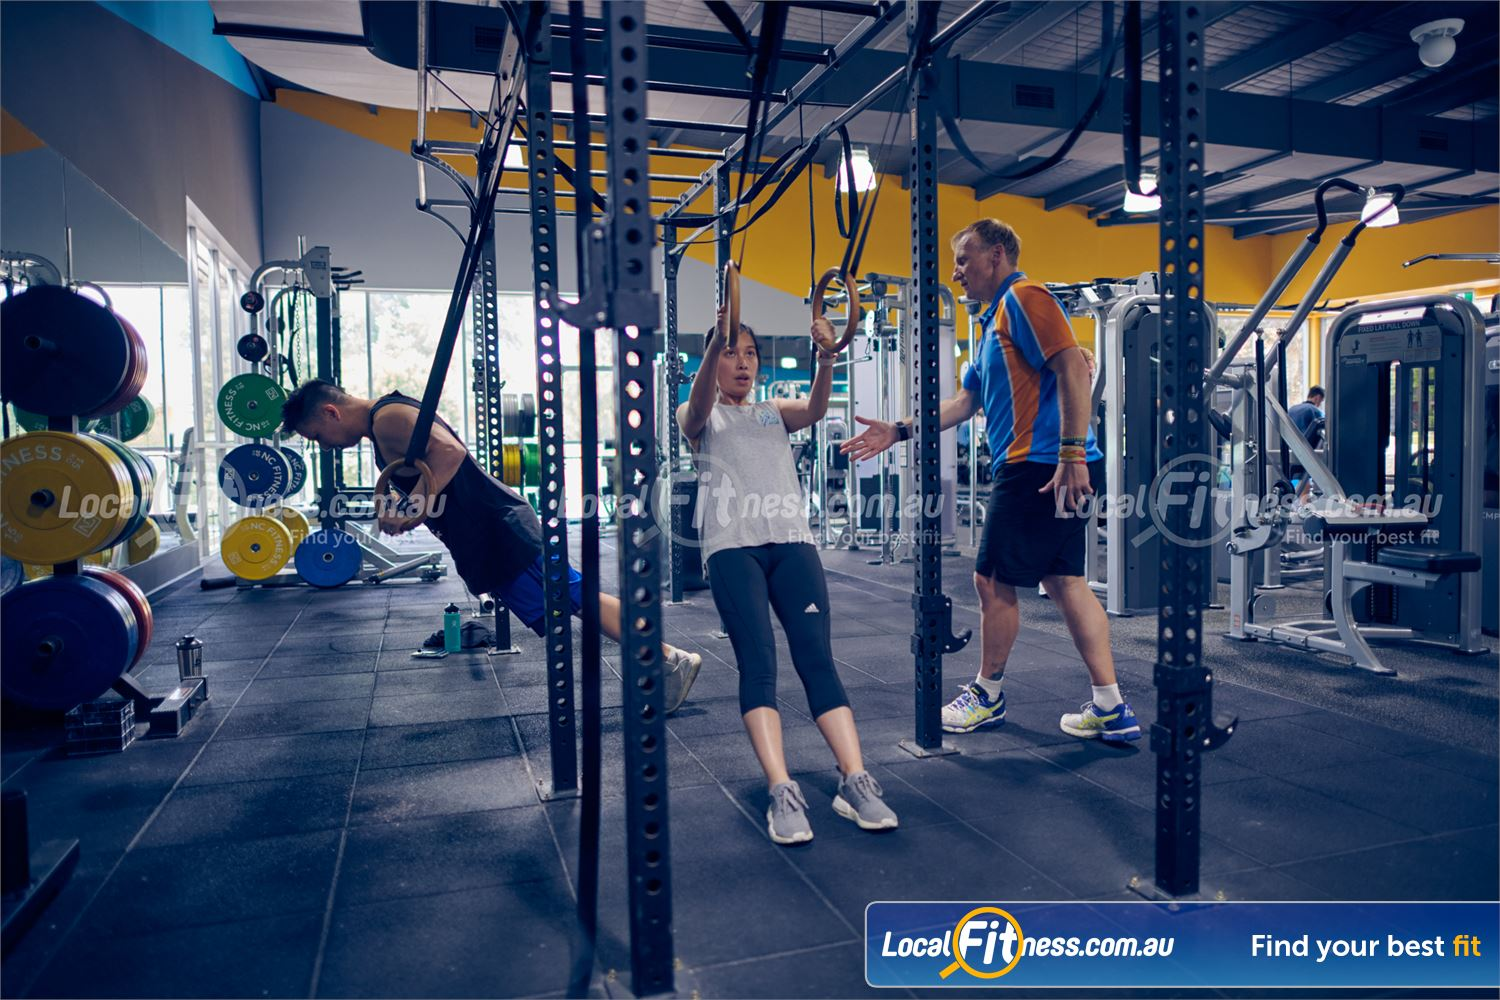 Knox Leisureworks Boronia The Knox Leisureworks Boronia gym includes a dedicated HIIT gym space.